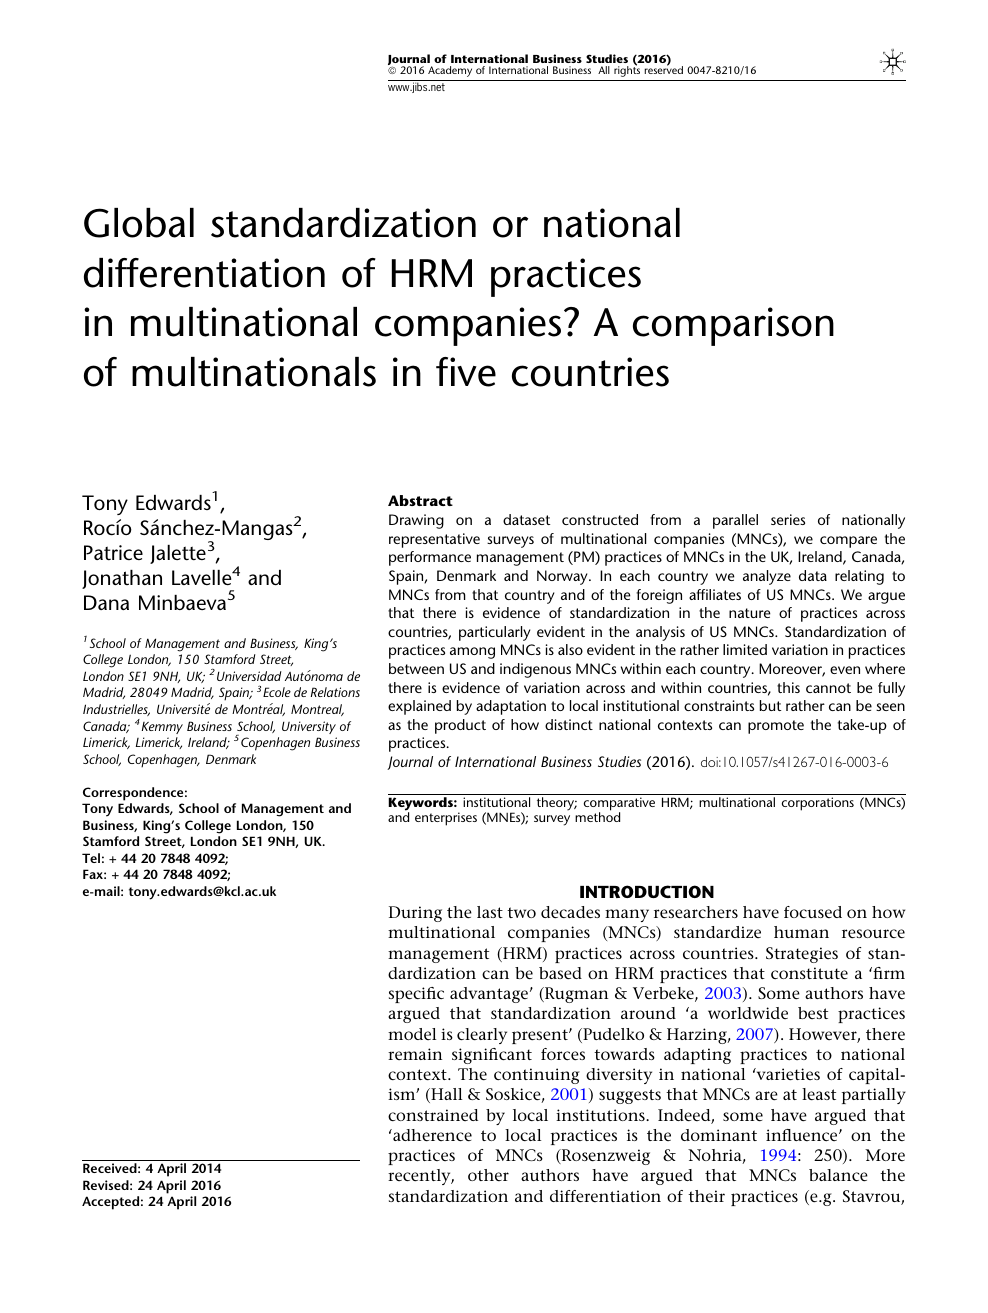 Global standardization or national differentiation of HRM